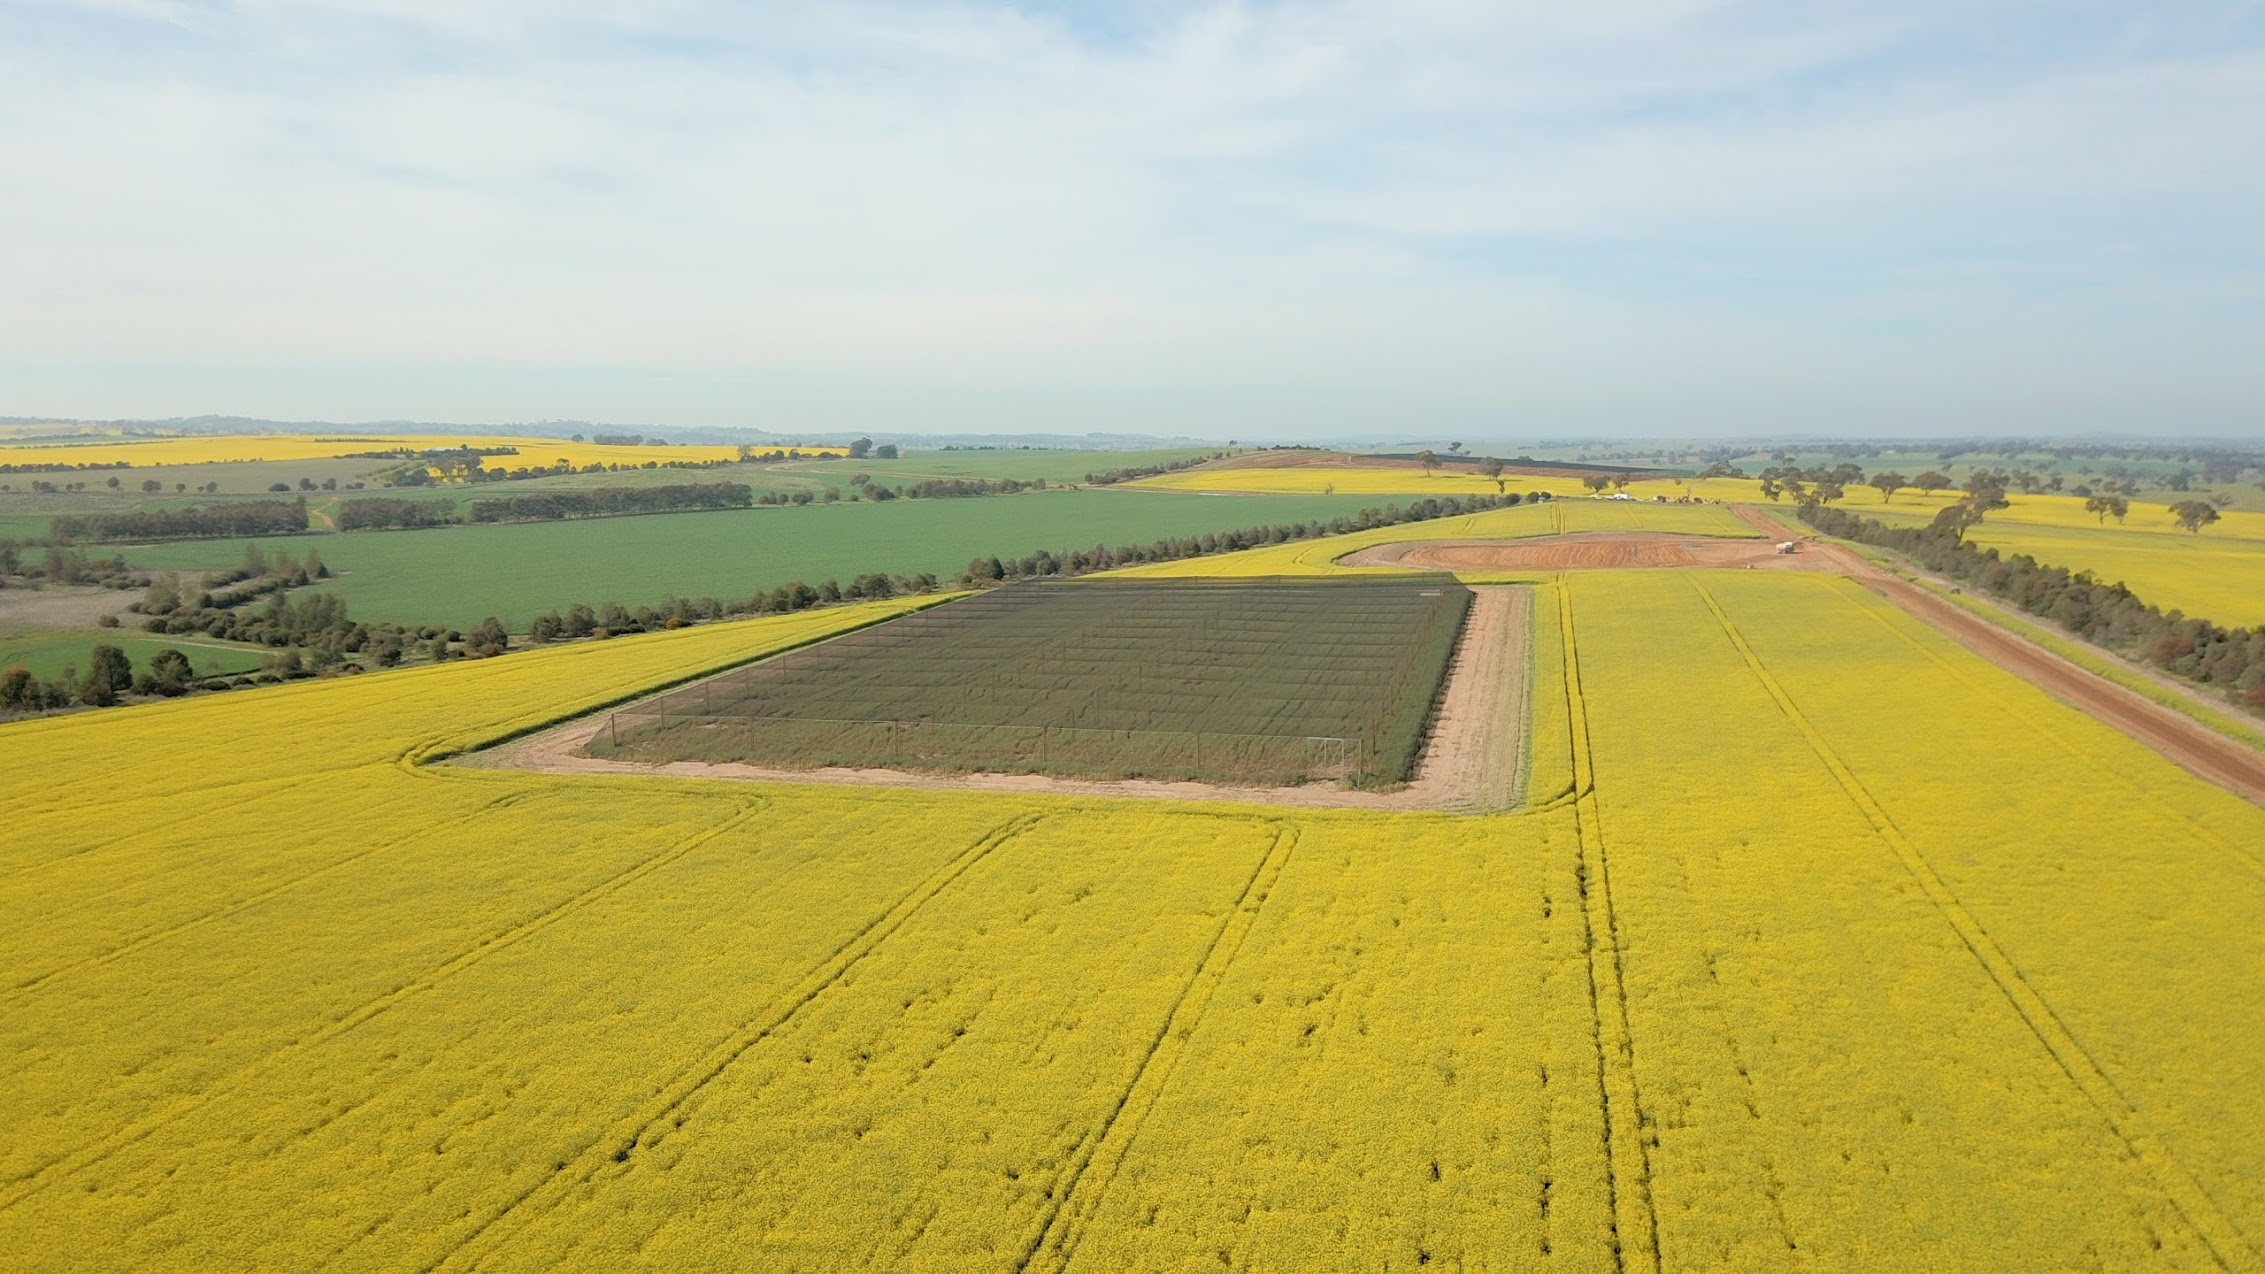 Canola in flower at CSIRO's Boorowa Agricultural Research Station